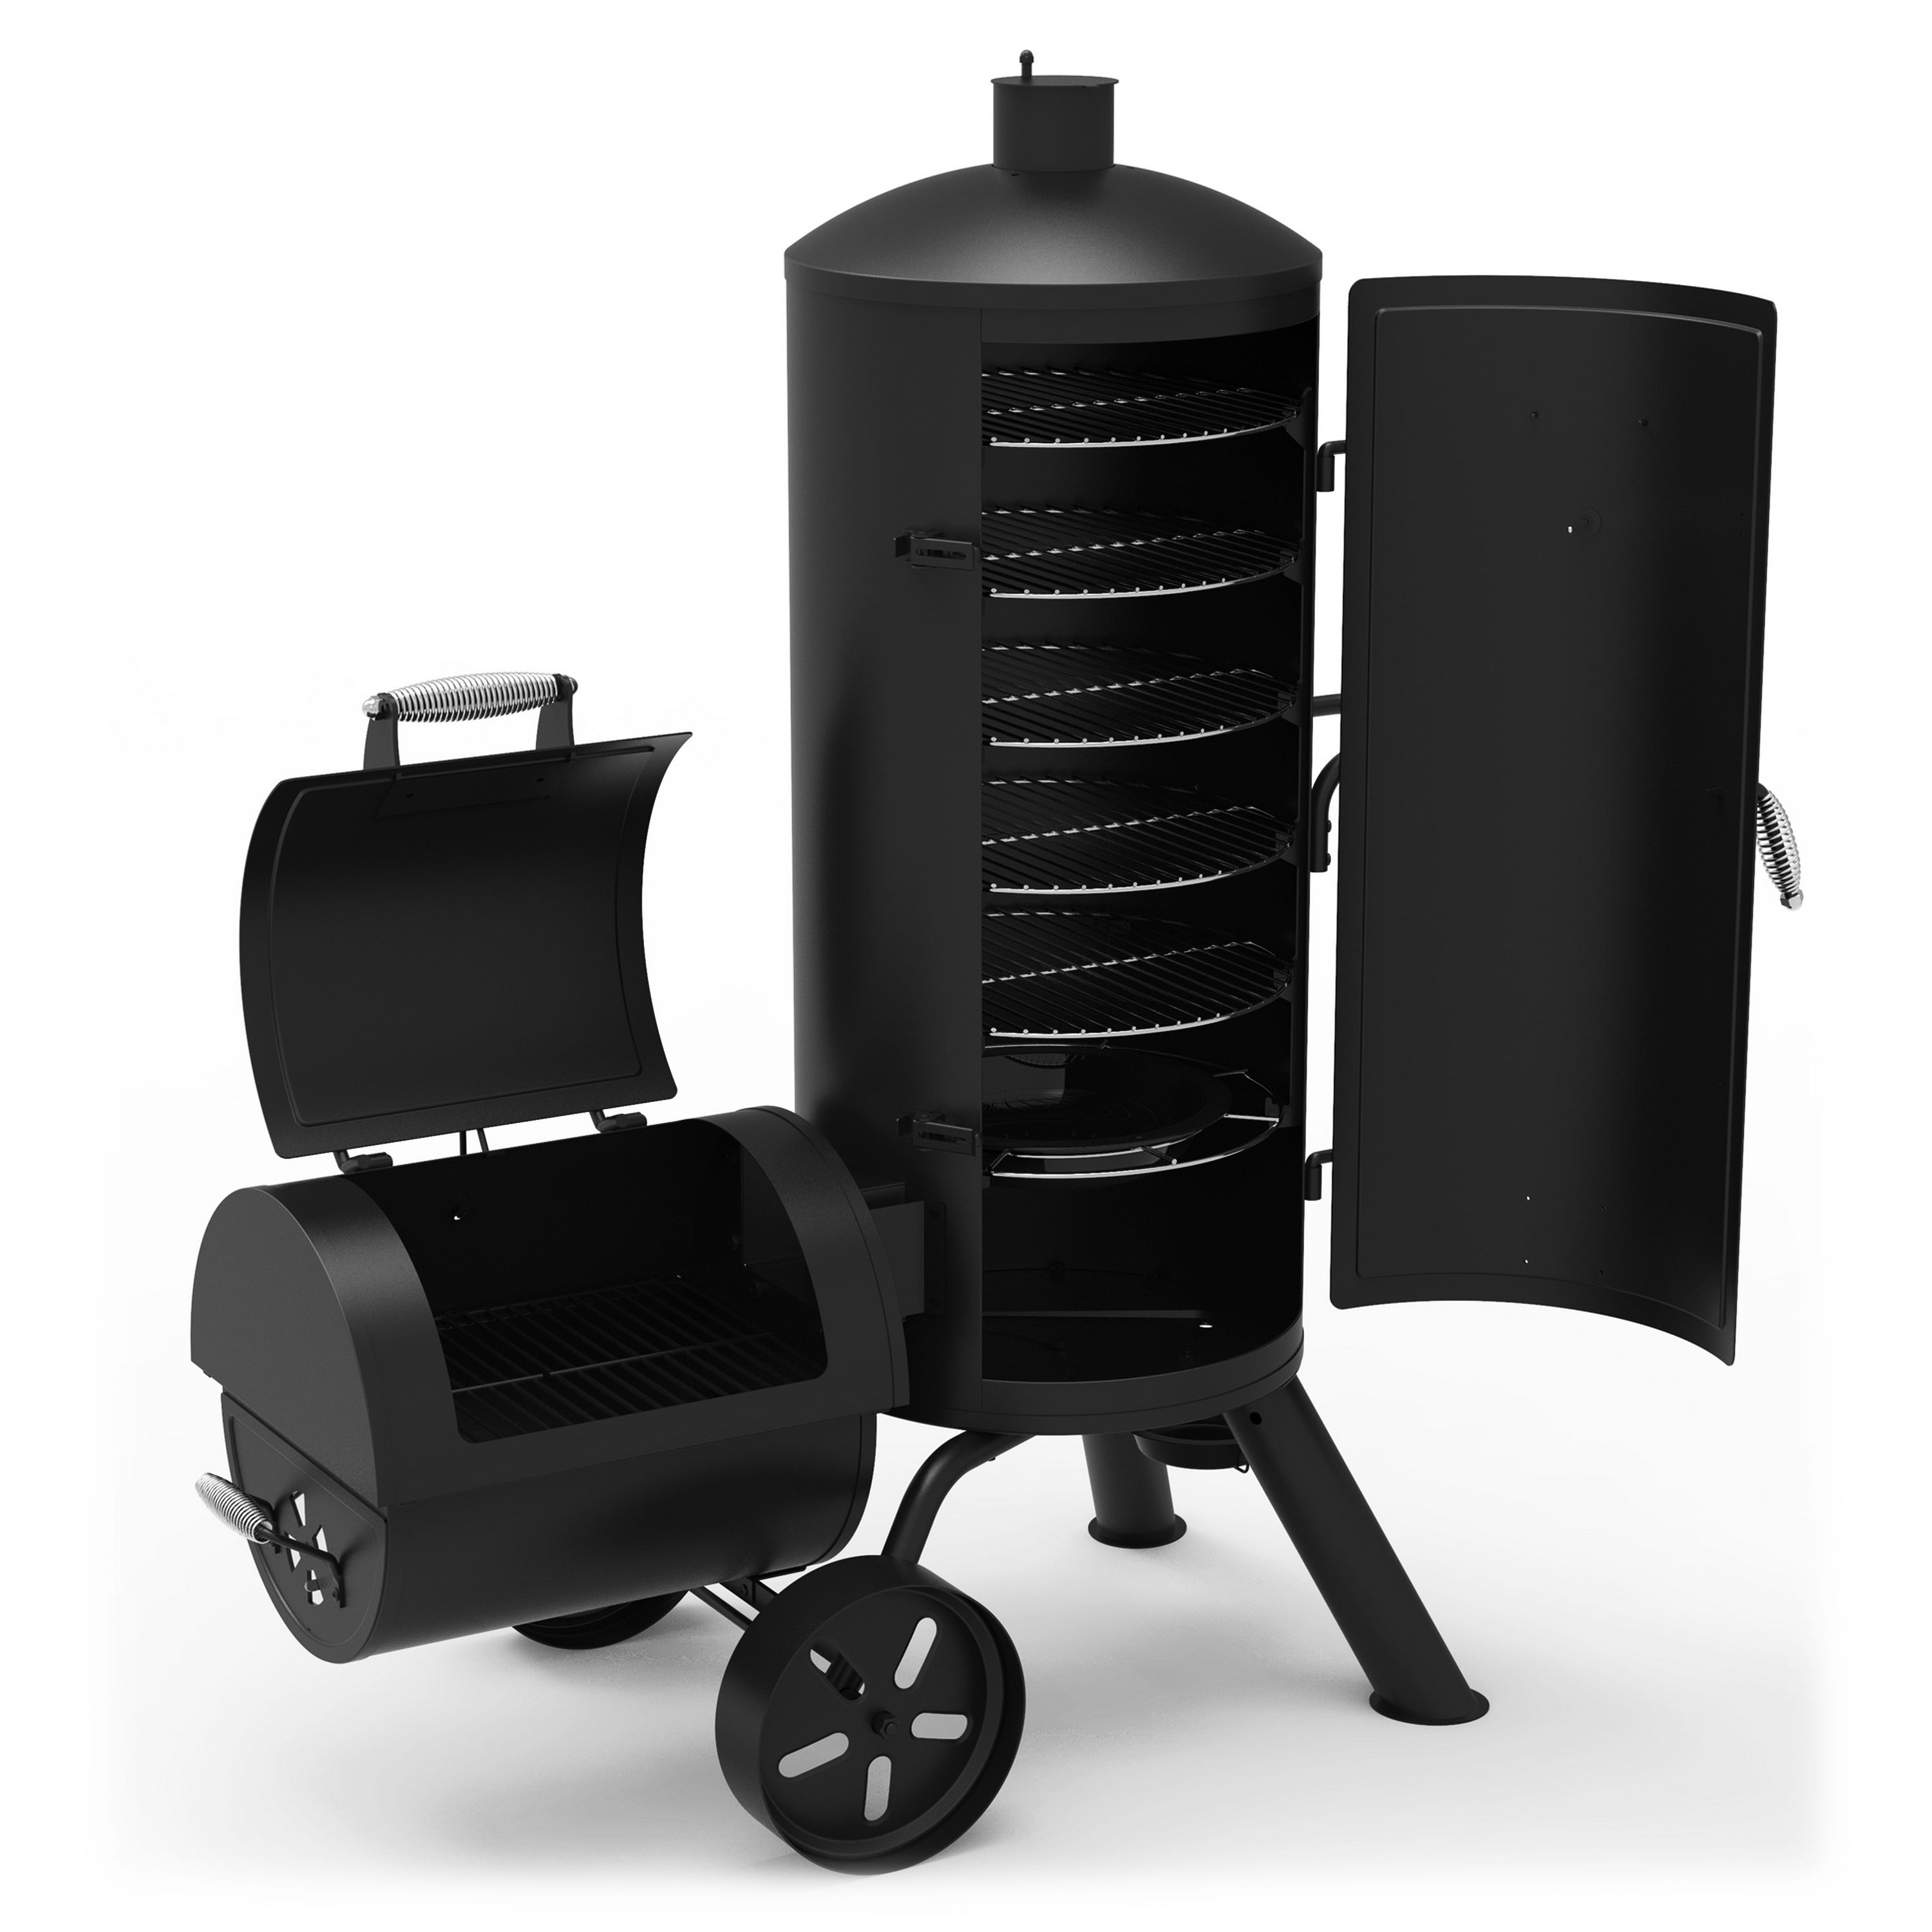 62cc8afc2b78 Dyna-Glo Signature Series Heavy-duty Vertical Offset Charcoal Smoker and  BBQ Grill with Cover